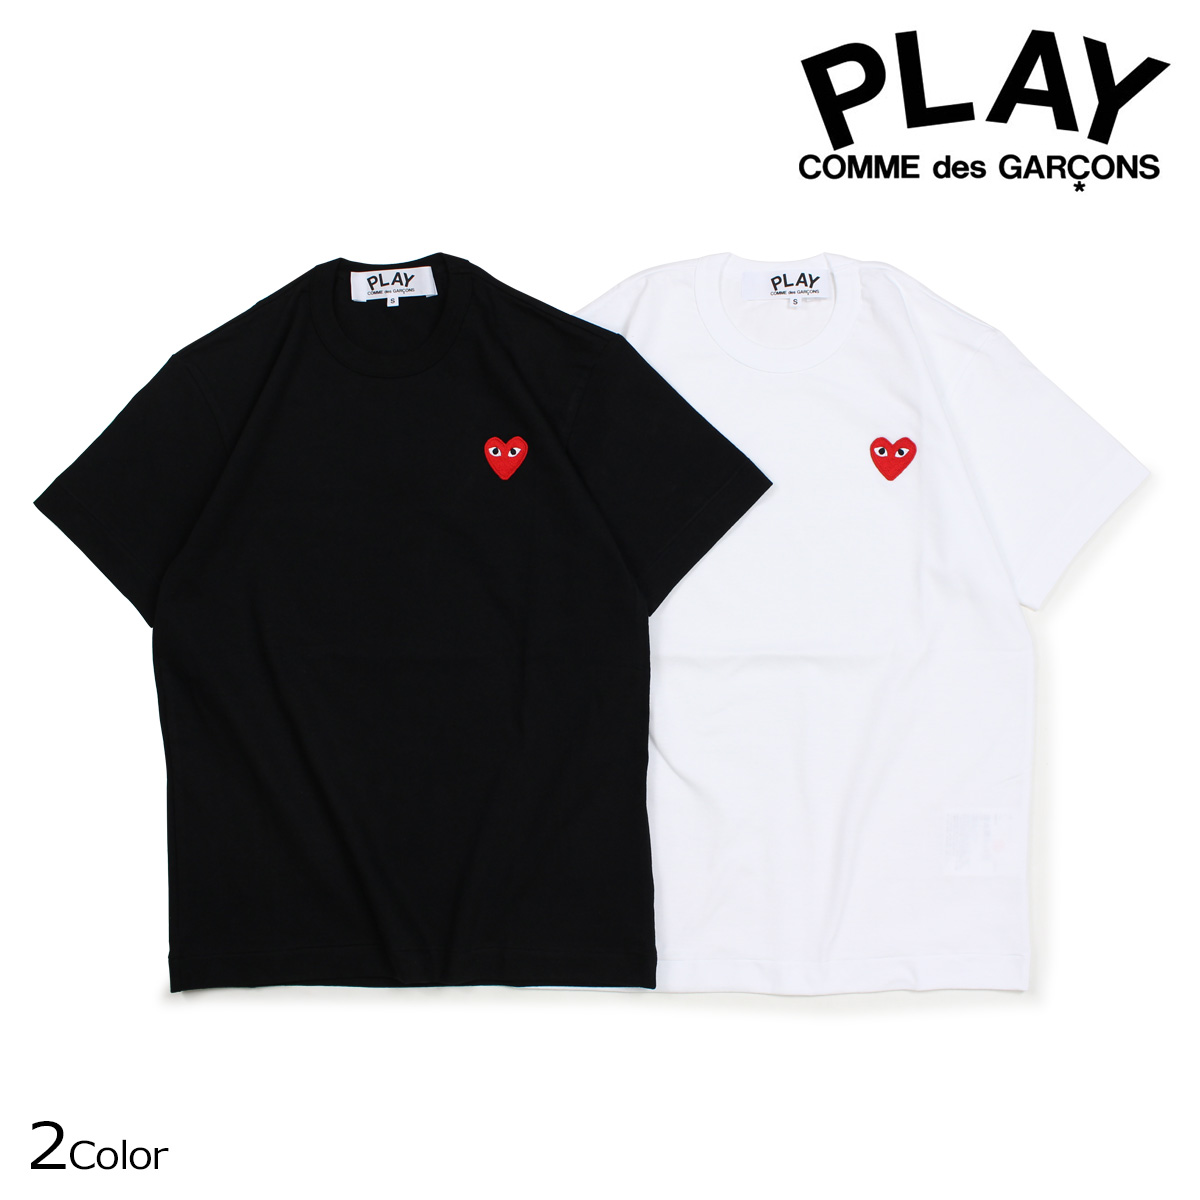 0539098389ef0 コムデギャルソン PLAY T-shirt short sleeves COMME des GARCONS men RED HEART T-SHIRT  black white AZT108